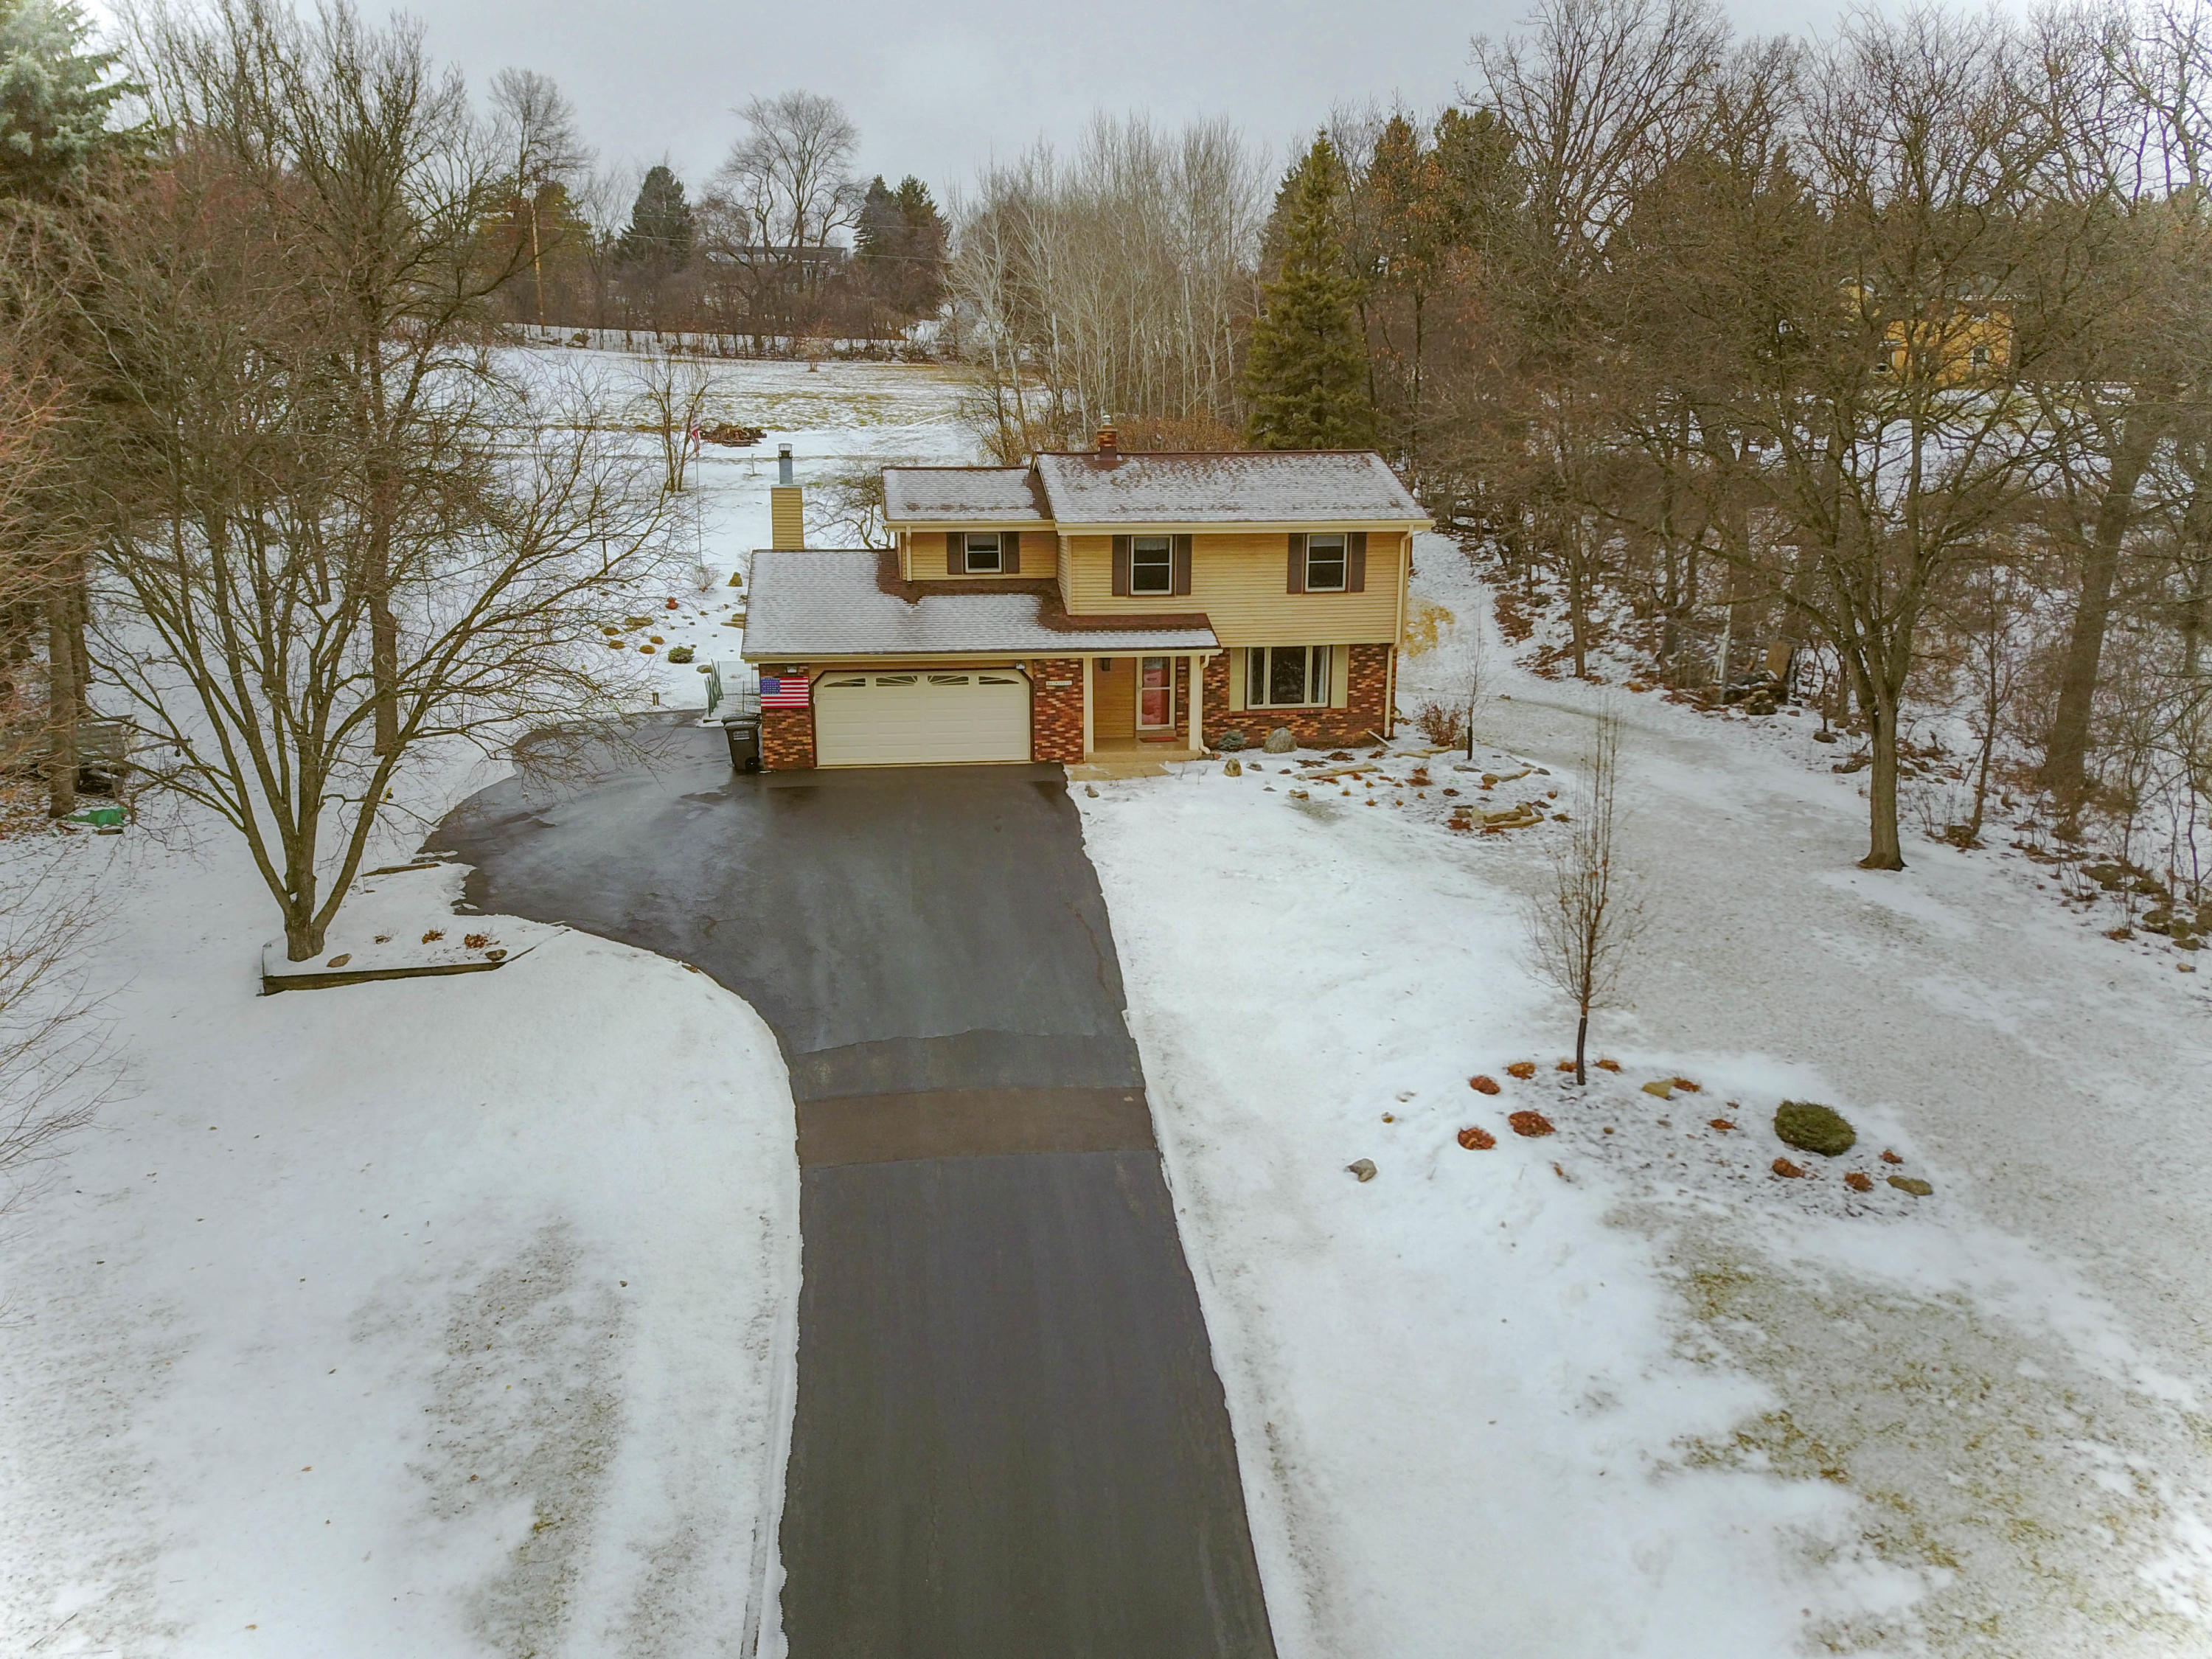 N47W27010 Greenhill Dr, Pewaukee, Wisconsin 53072, 4 Bedrooms Bedrooms, 8 Rooms Rooms,1 BathroomBathrooms,Single-Family,For Sale,Greenhill Dr,1623486